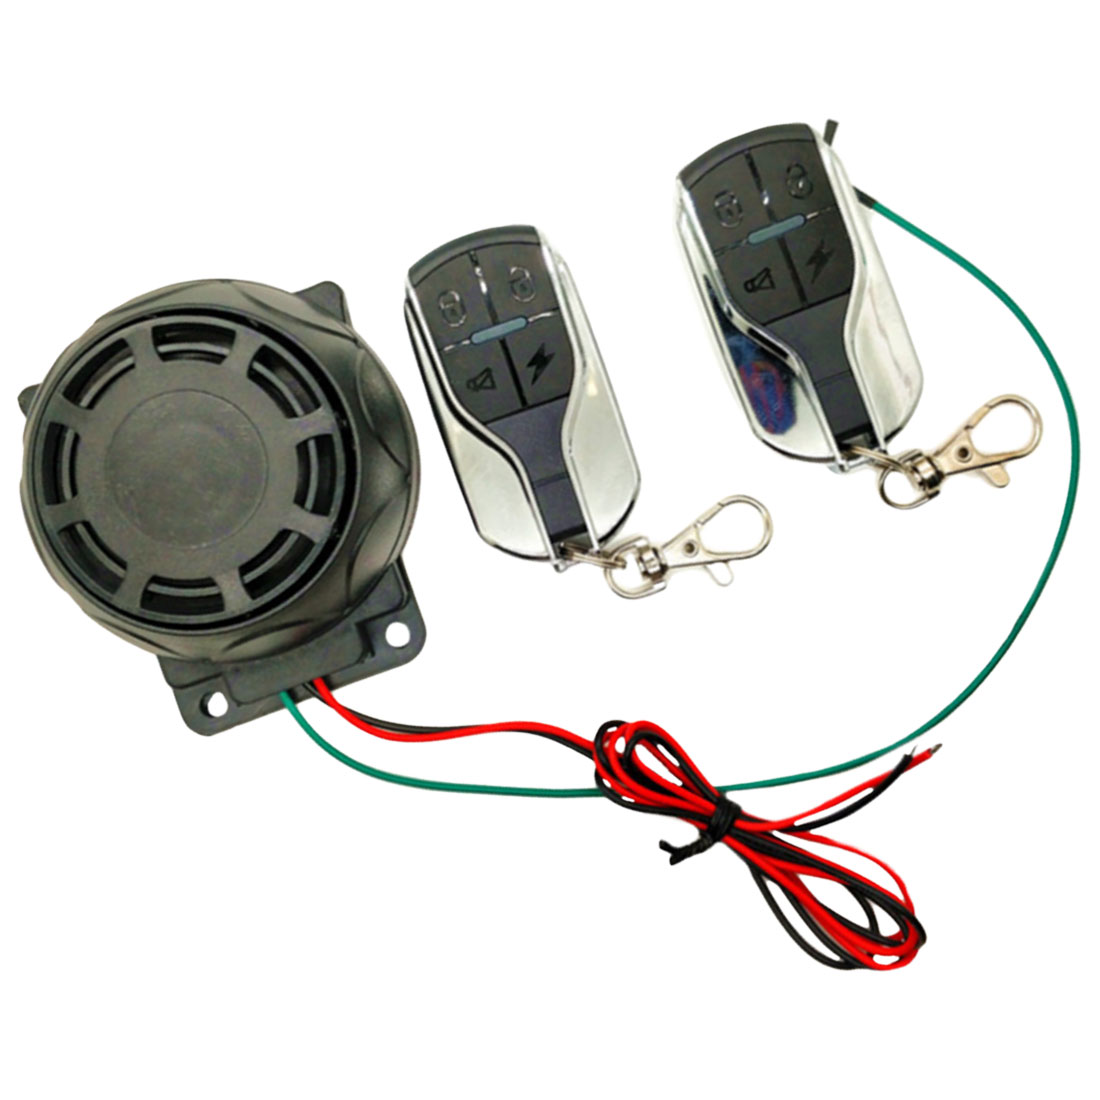 Dual Remote Control Motorcycle Anti-theft Scooter Security Alarm Systems